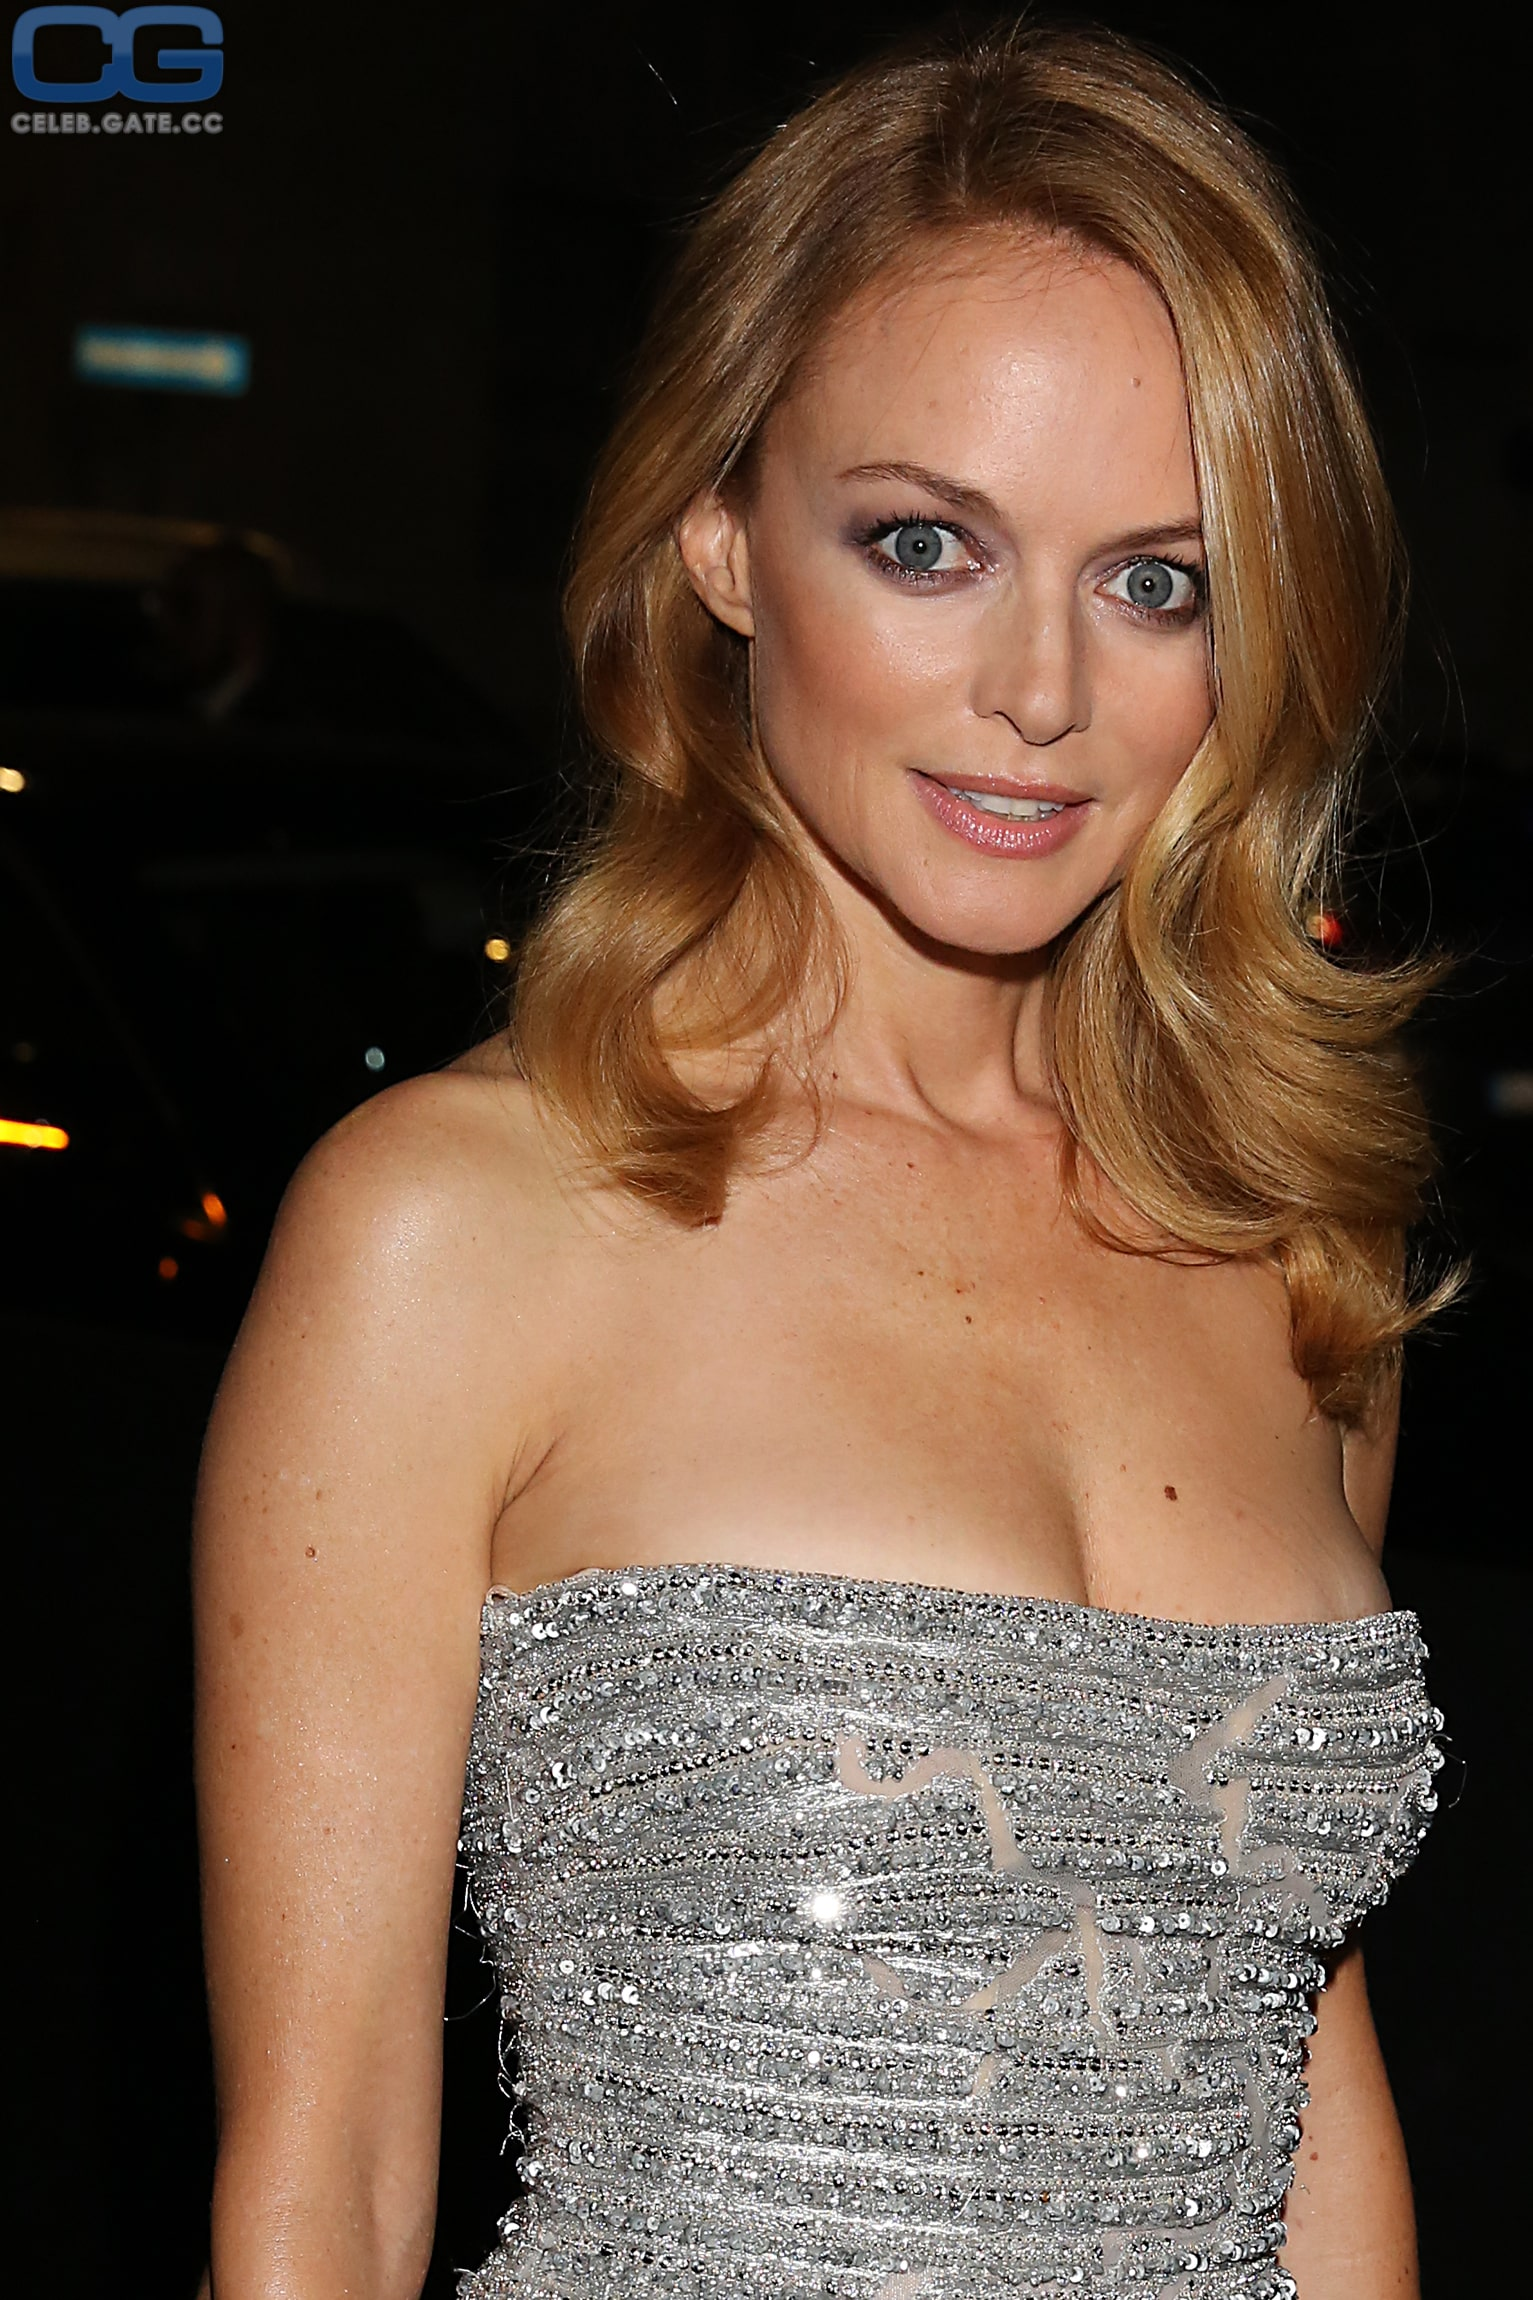 heather graham hot cleavage